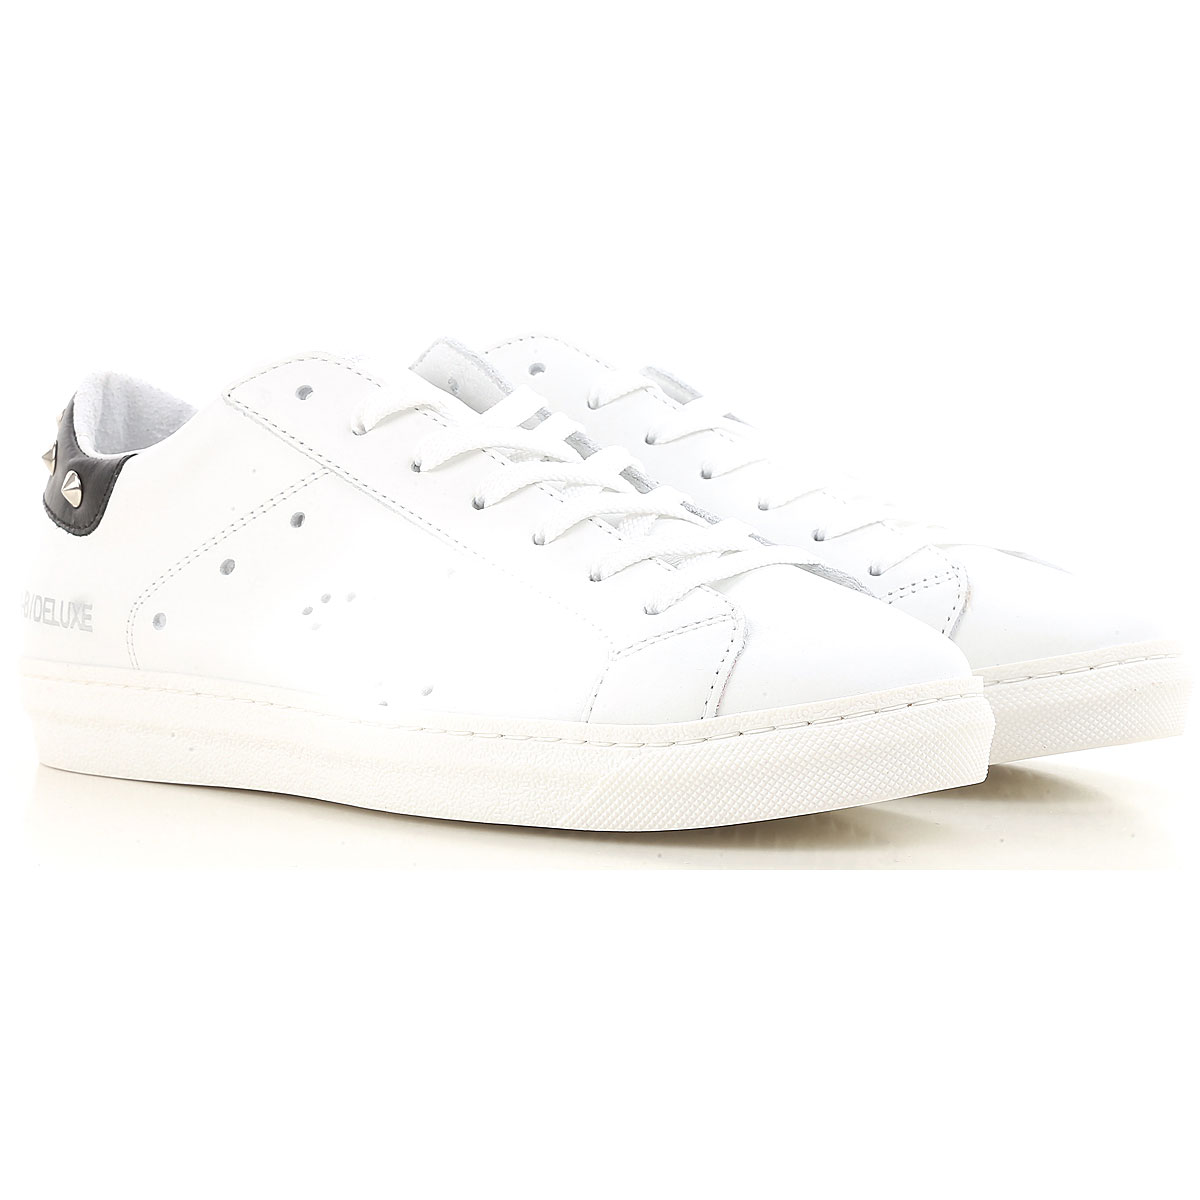 Image of Ama Brand Sneakers for Women On Sale, White, Leather, 2017, EUR 37 - UK 4 - USA 6.5 EUR 38 - UK 5 - USA 7.5 EUR 39 - UK 6 - USA 8.5 EUR 40 - UK 7 - USA 9.5